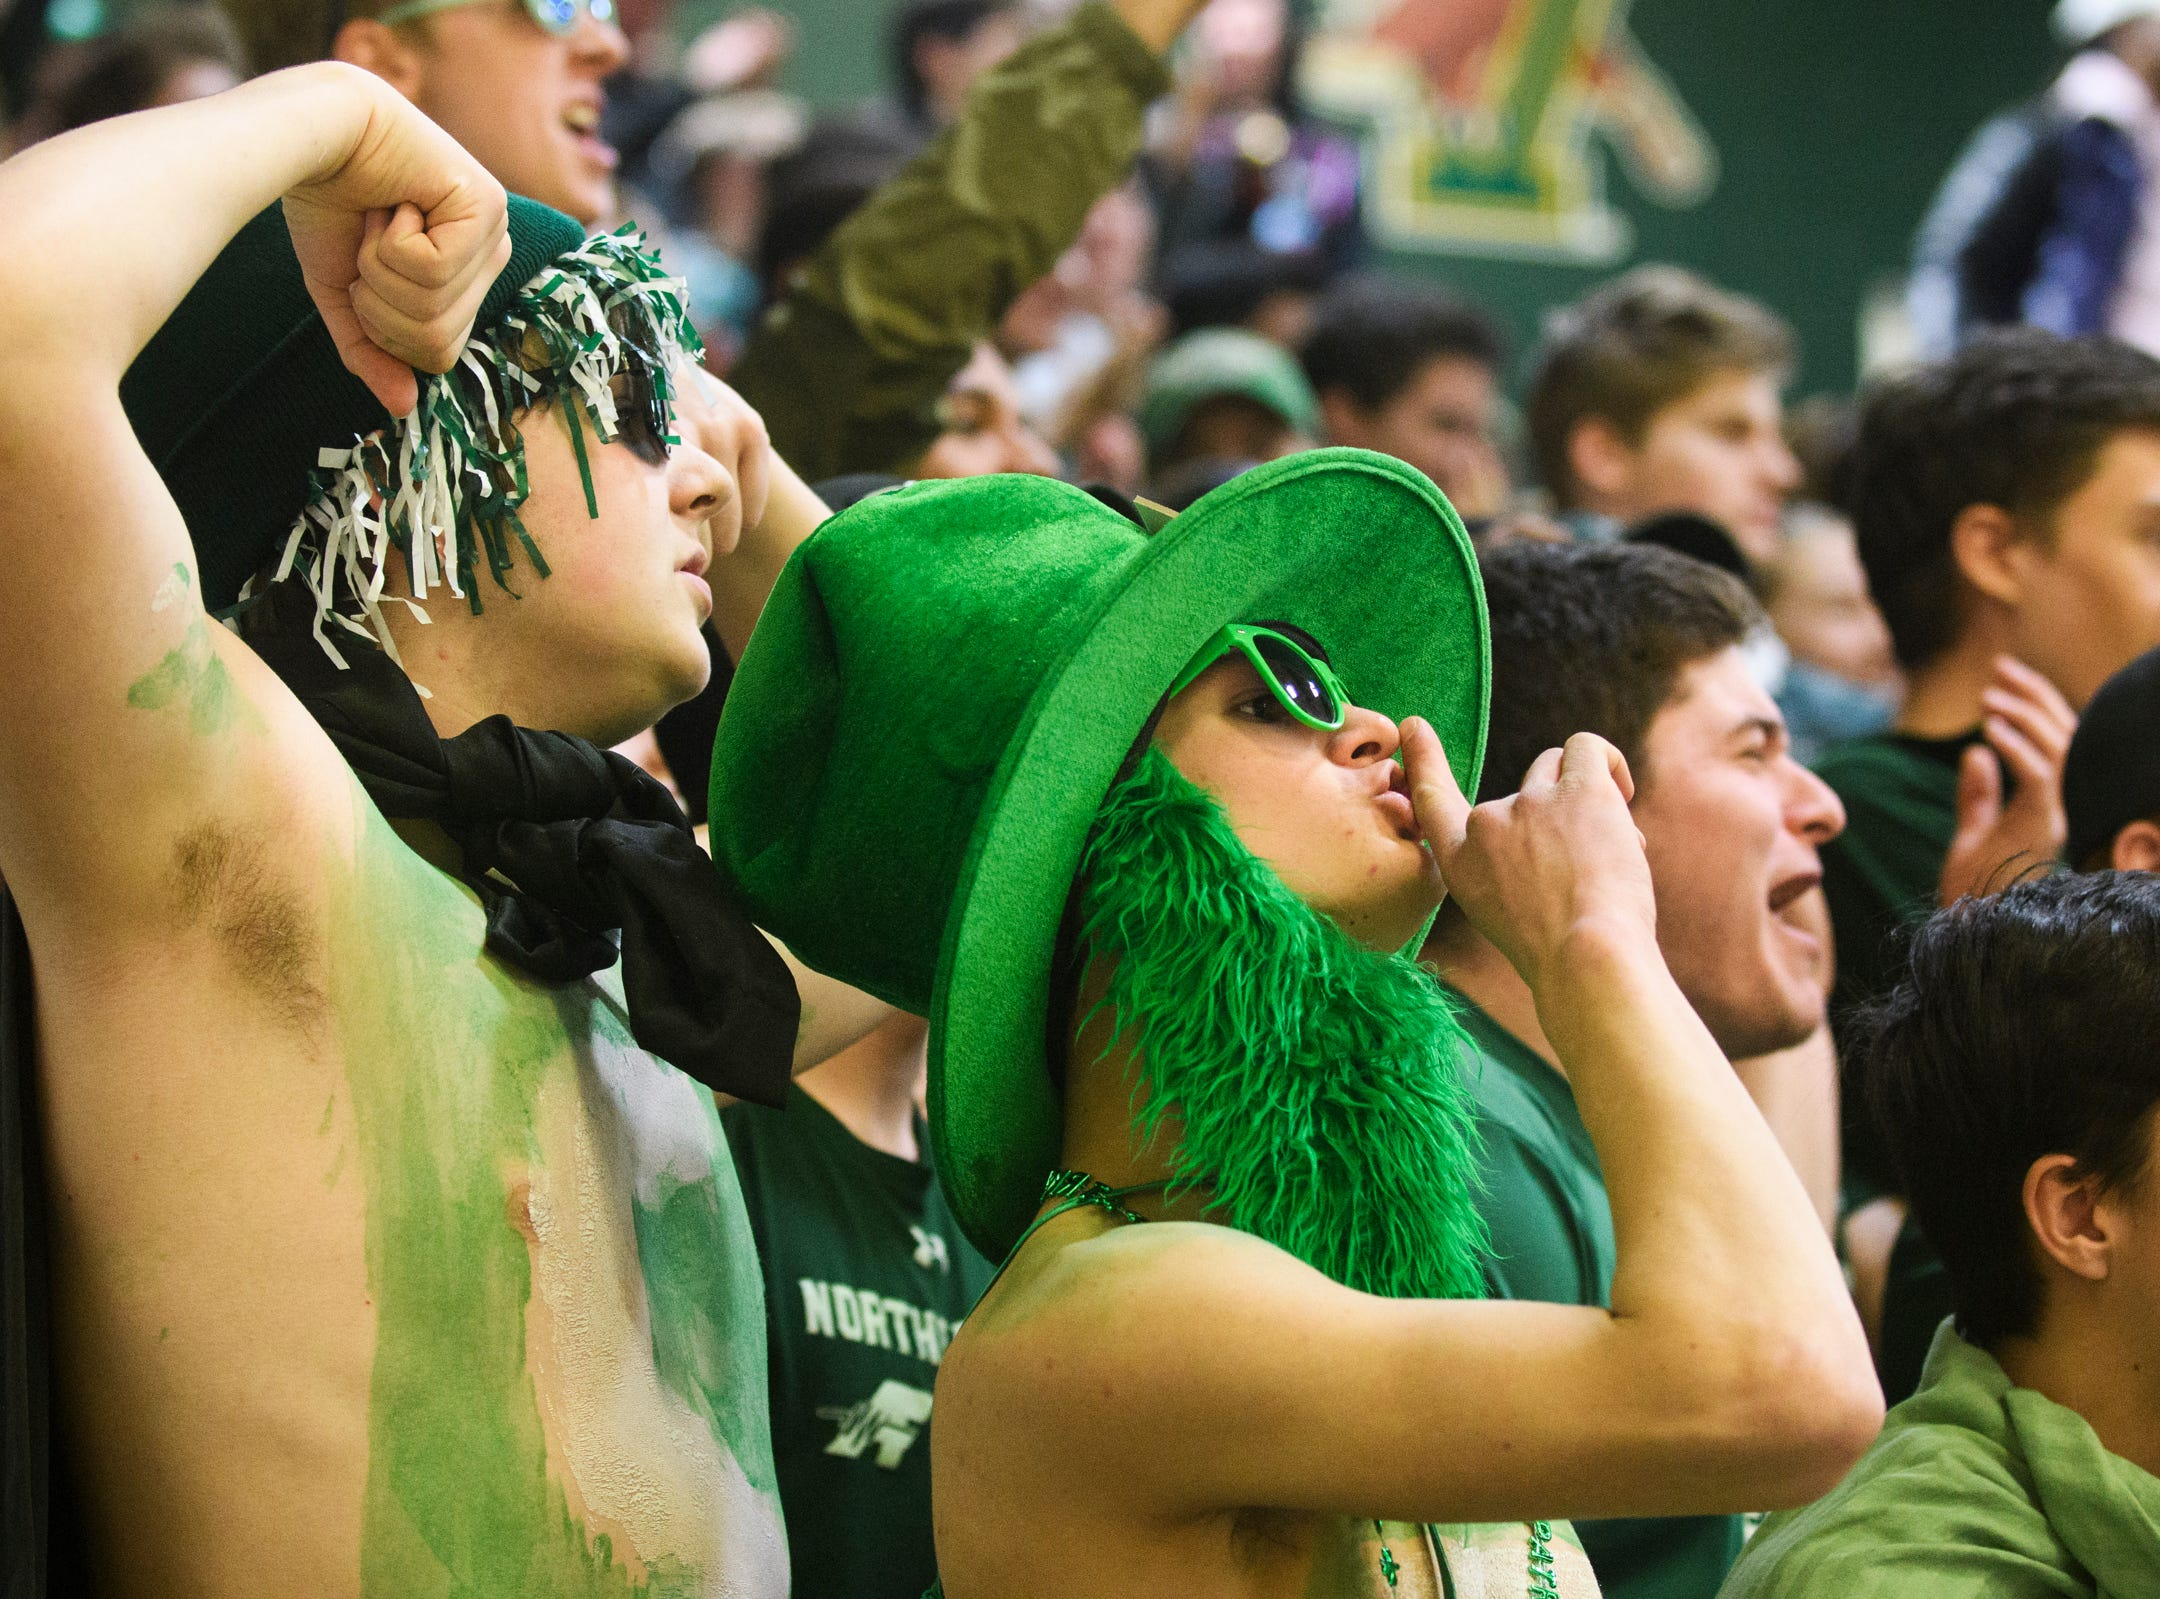 St. Johnsbury fans cheer for the team during the DI boys basketball championship game between the St. Johnsbury Hilltoppers and the Rutland Raiders at Patrick Gym on Sunday afternoon March 17, 2019 in Burlington, Vermont.